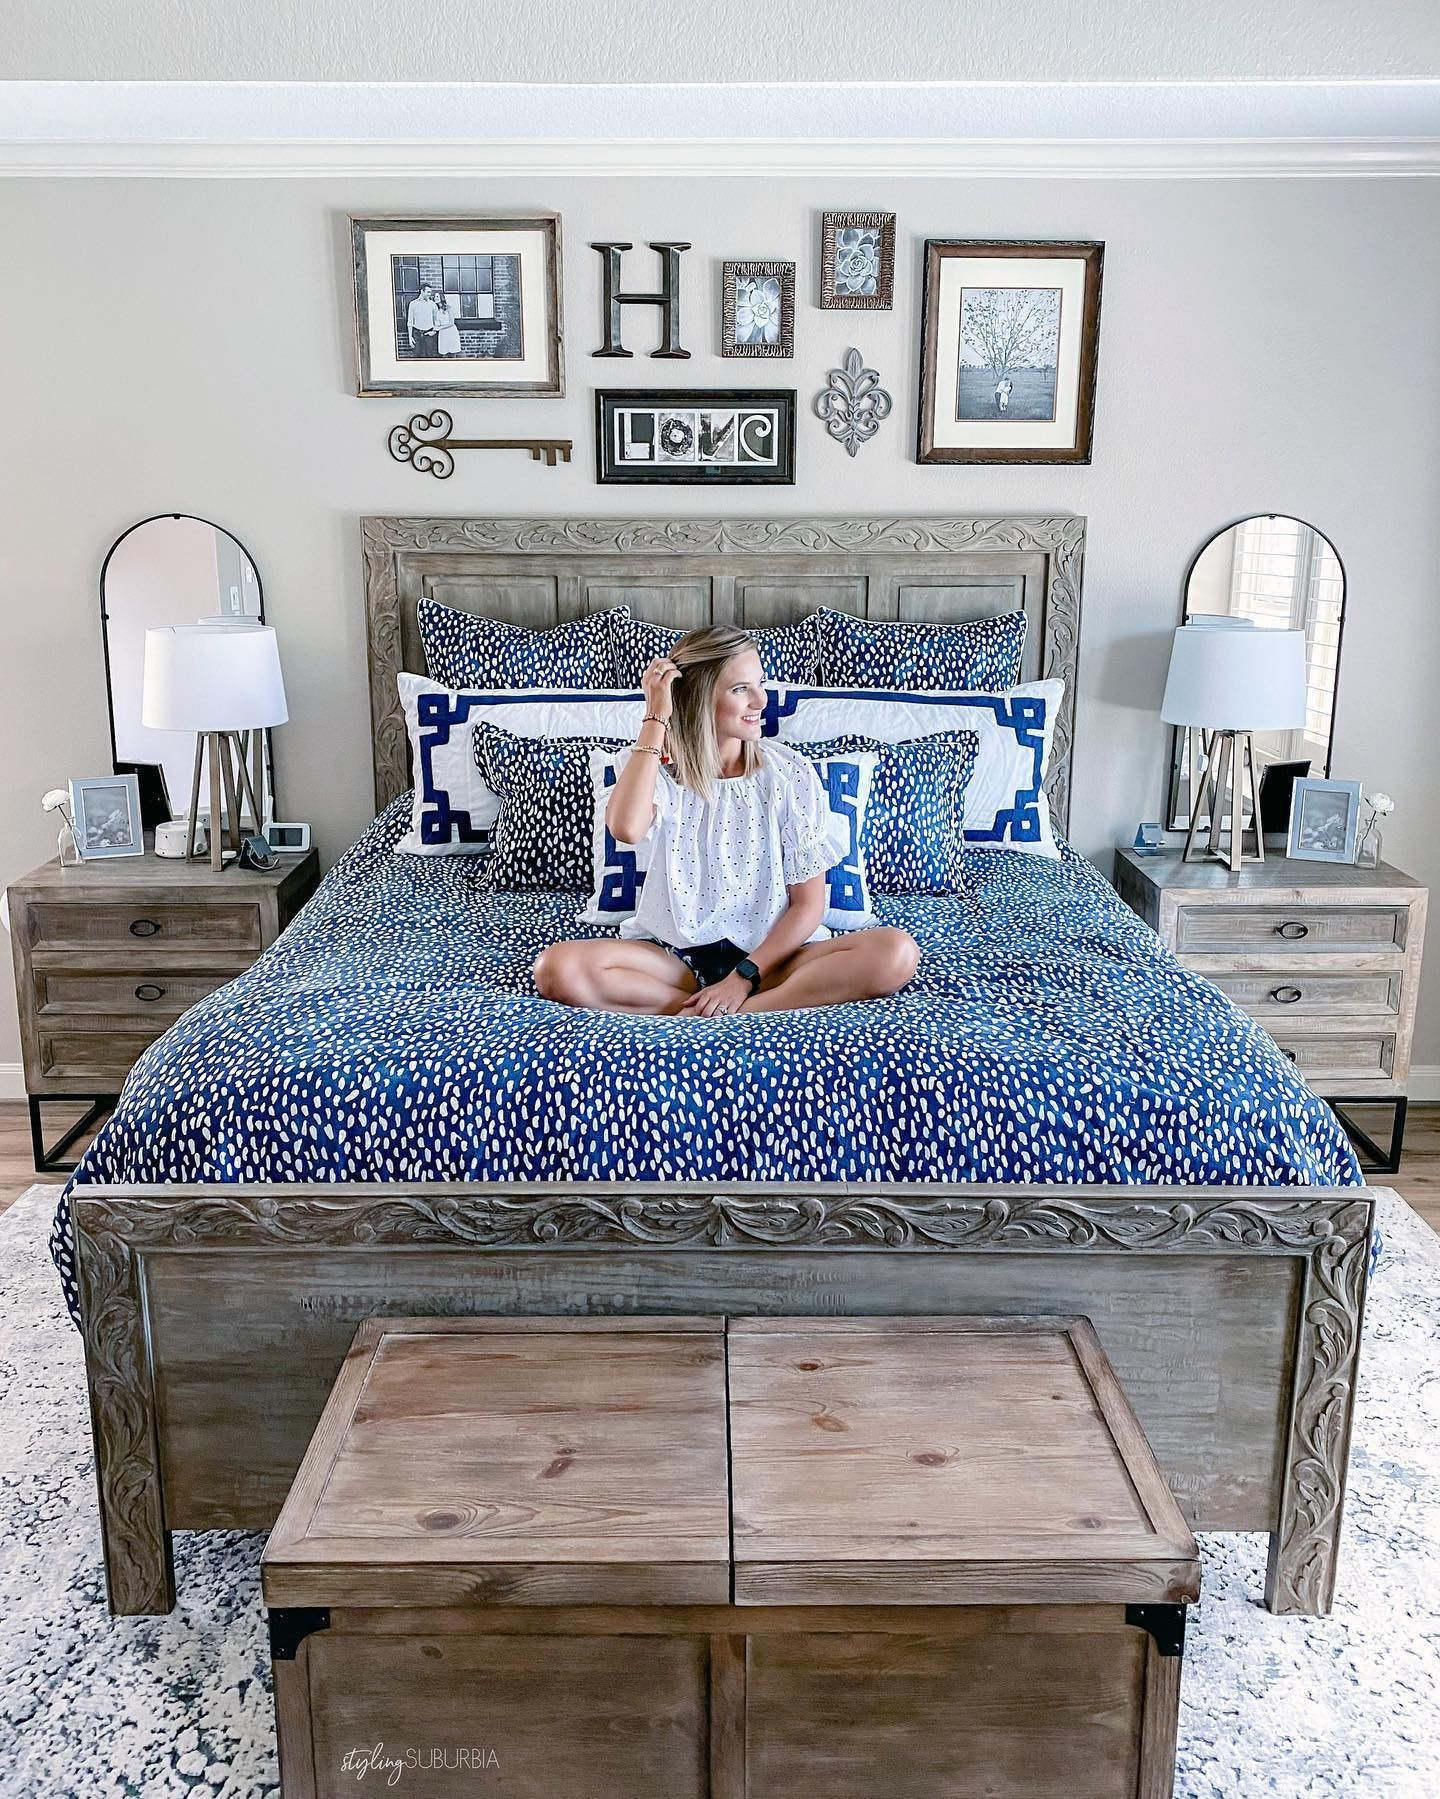 New Bedroom Furniture Reveal Love My New Bed Frame And Nightstands From Homesourcefurnitu Master Bedroom Furniture Stylish Master Bedrooms Neutral Bedrooms